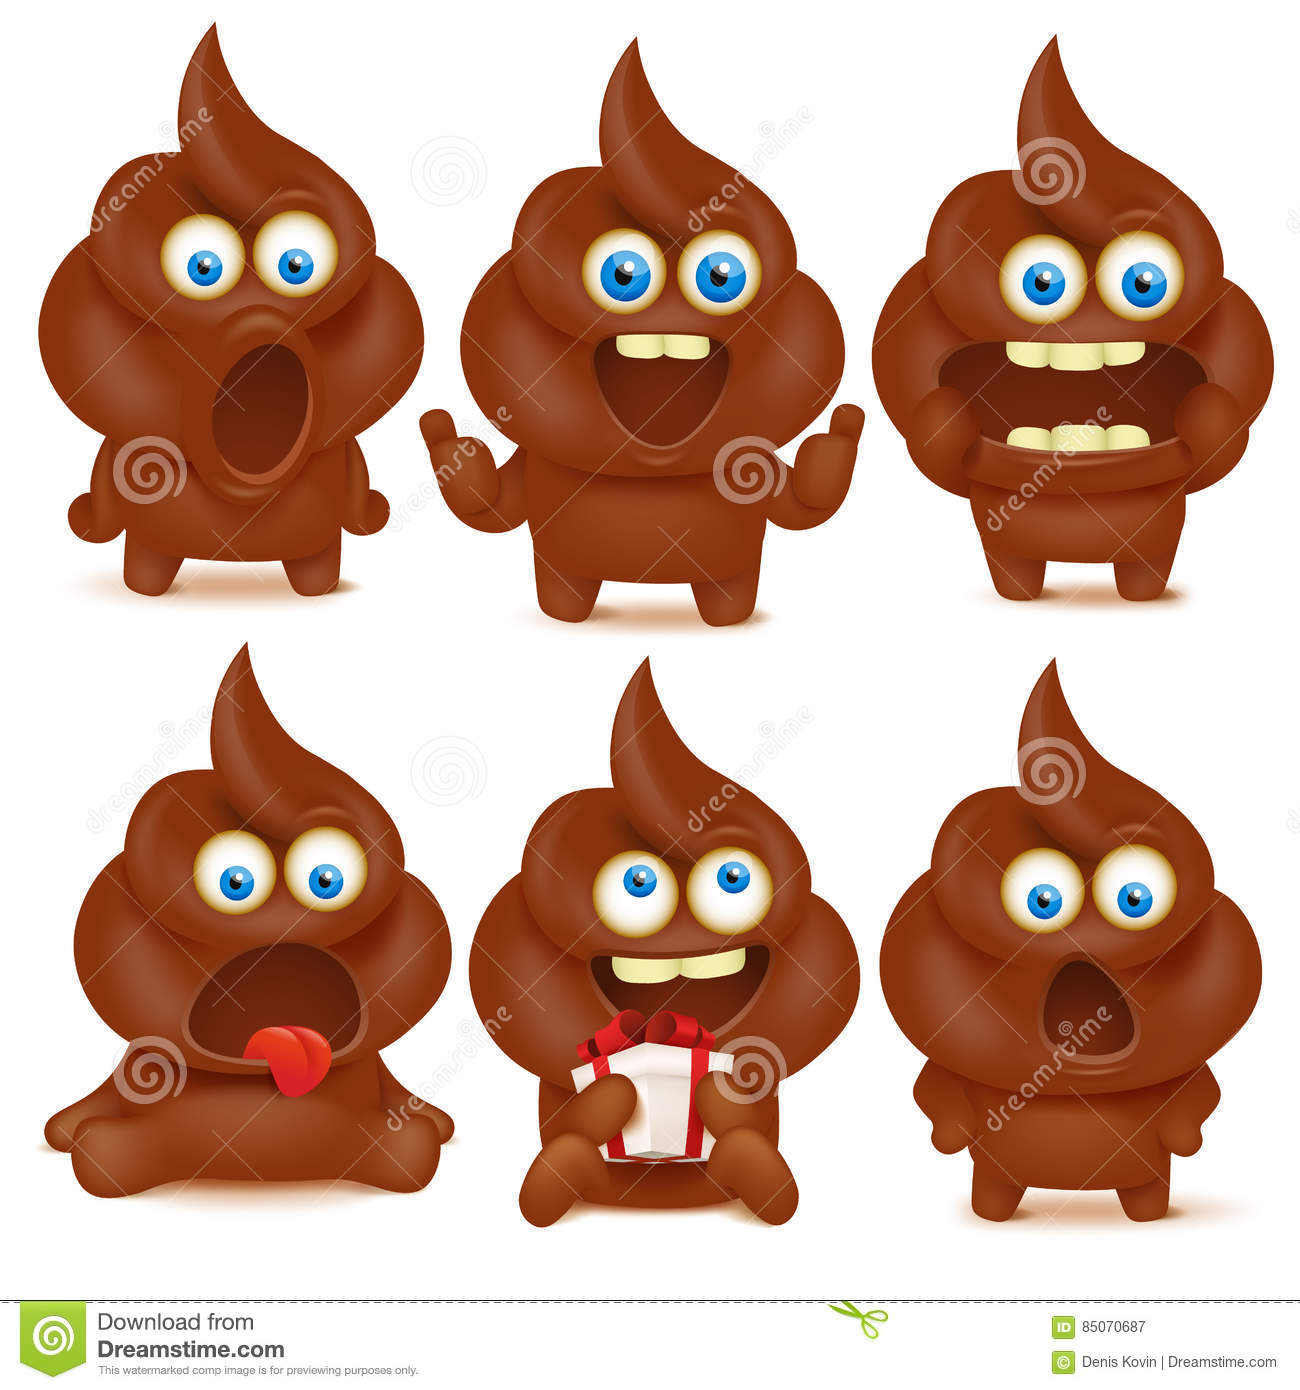 Cute Poop And Pee Characters Vector Illustration